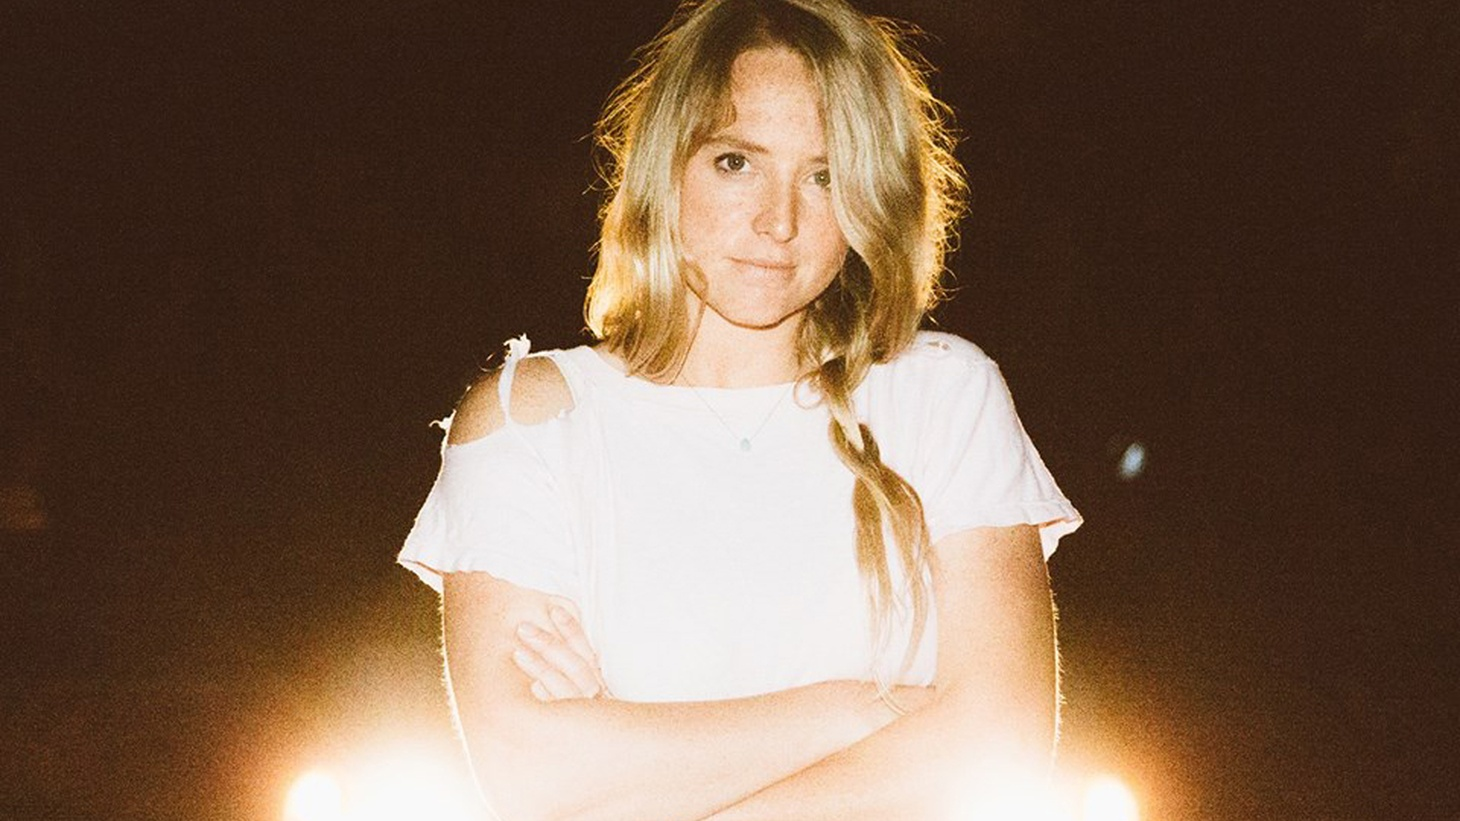 My Wild West is Lissie's most personal album to date as she pays tribute to the land she's loved: California.